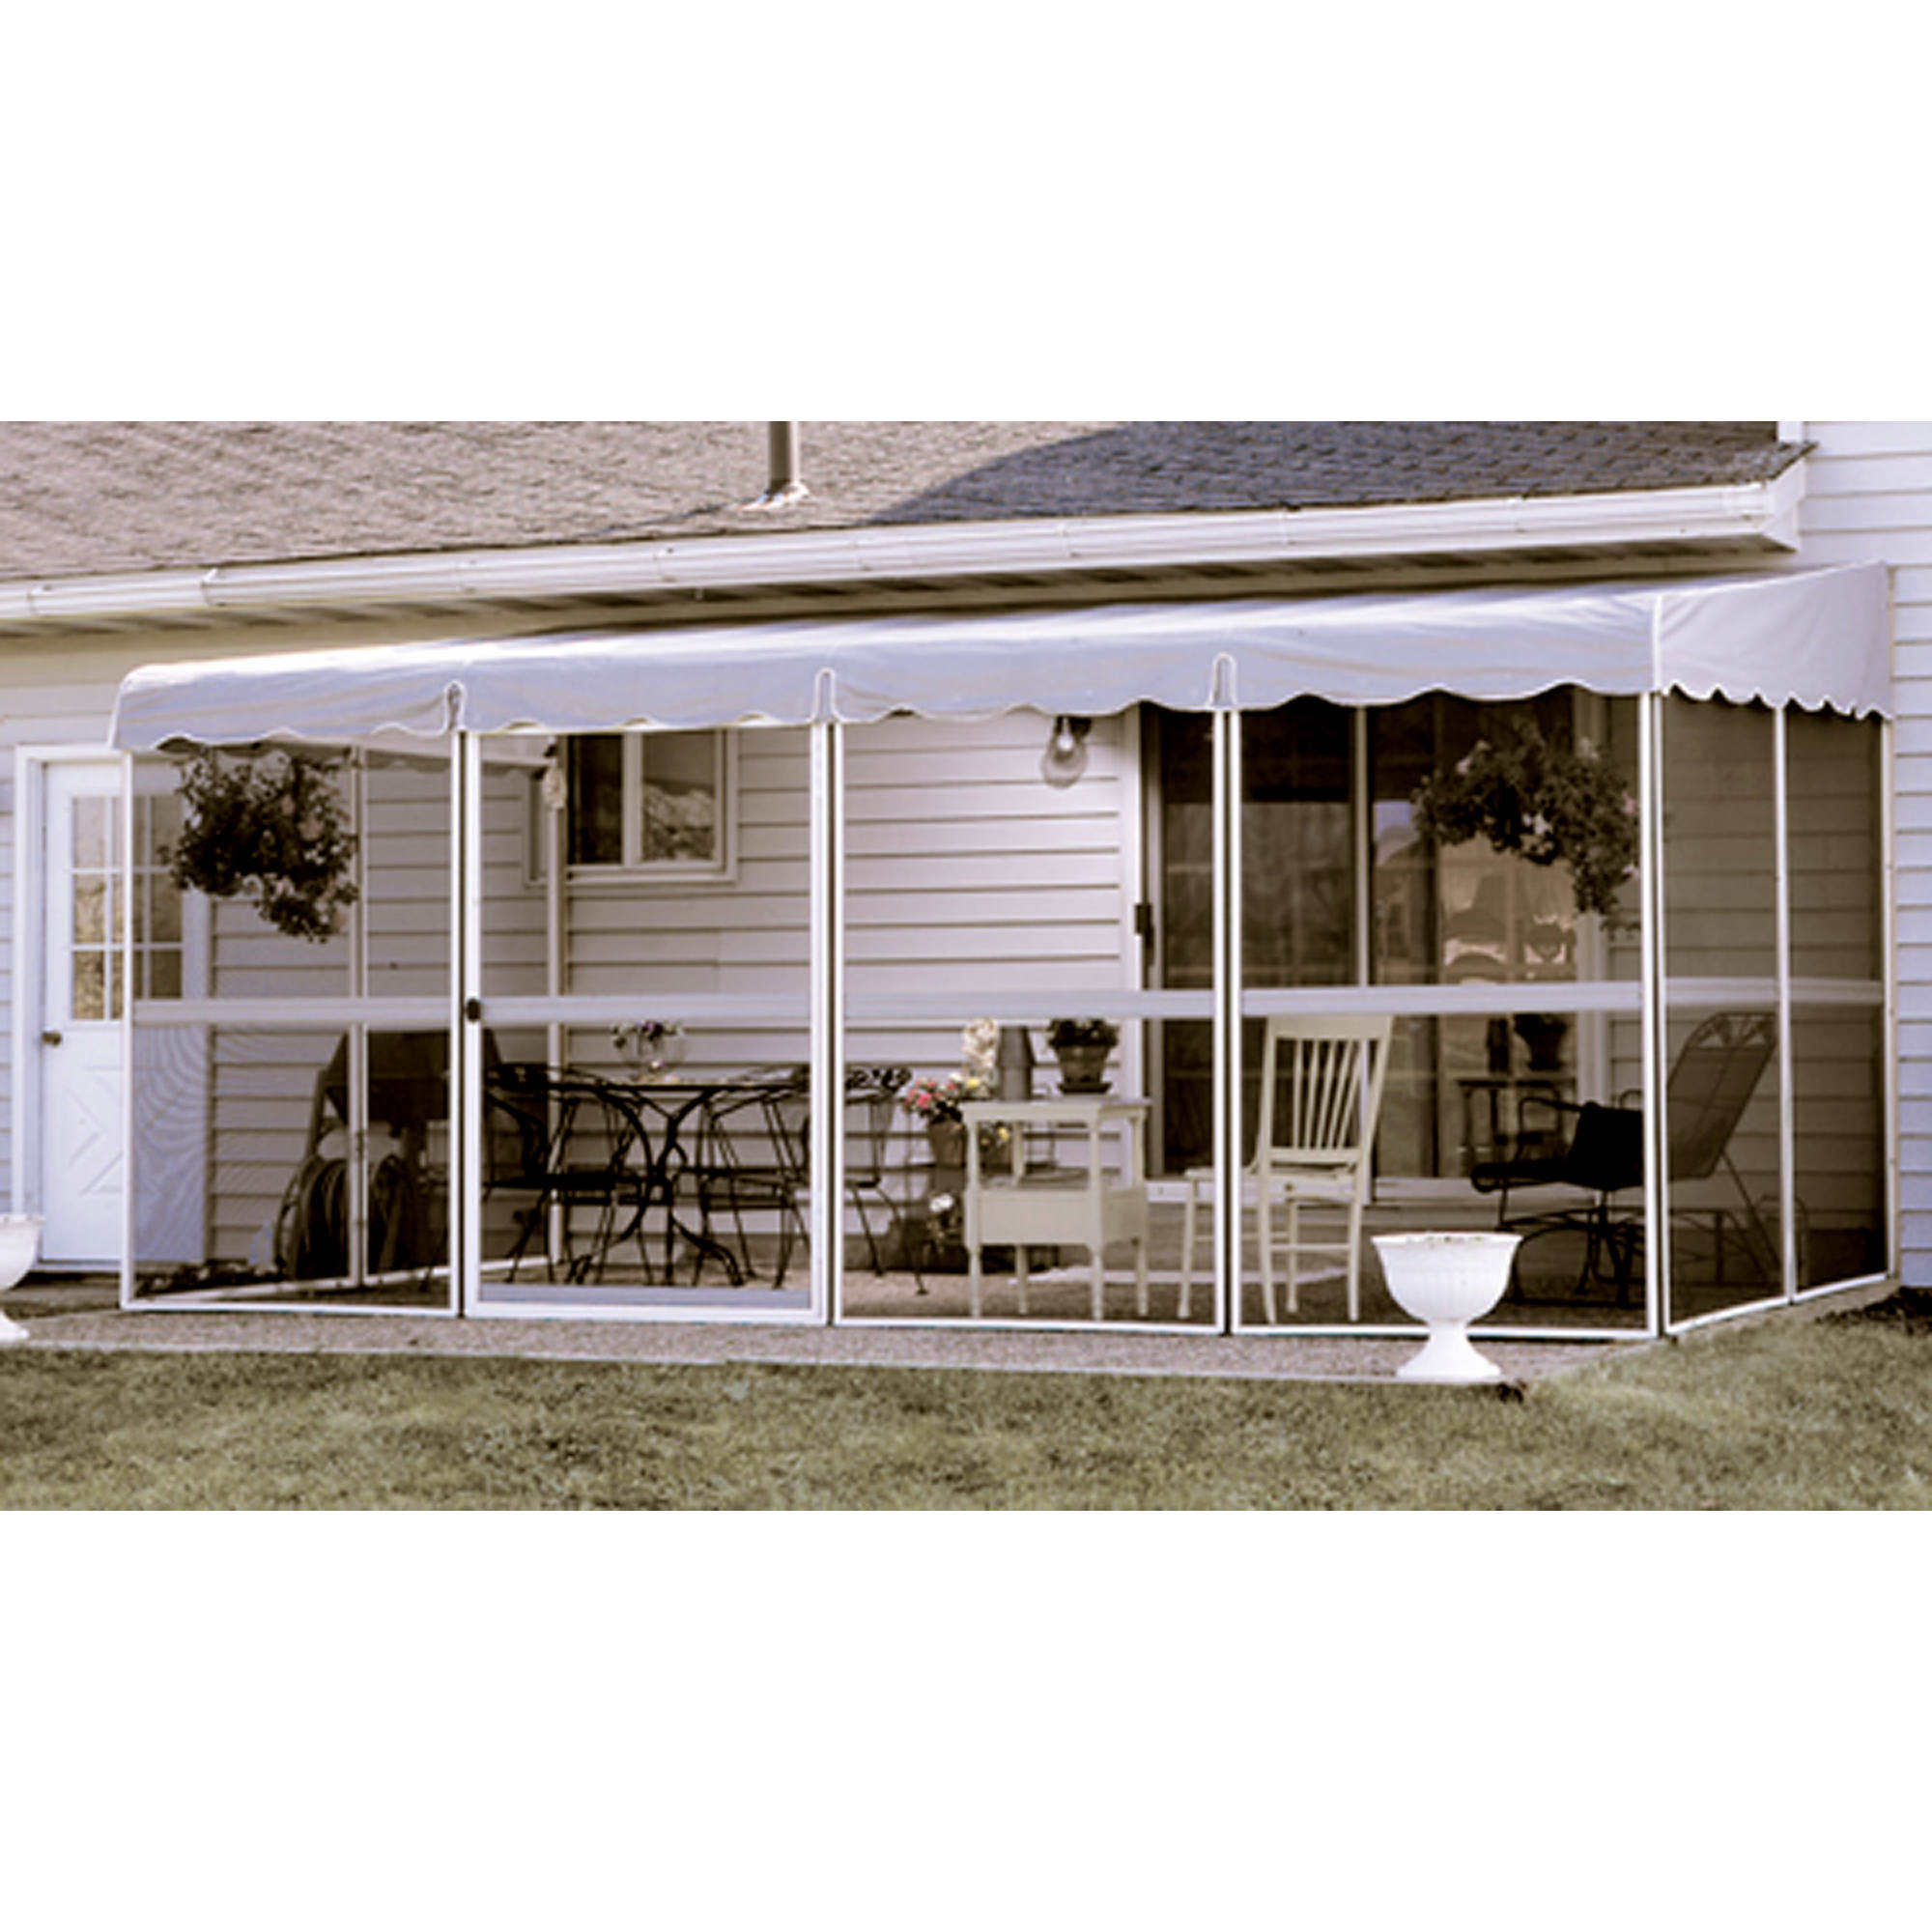 patio mate white 17 39 1 x 8 39 6 screened enclosure bj 39 s